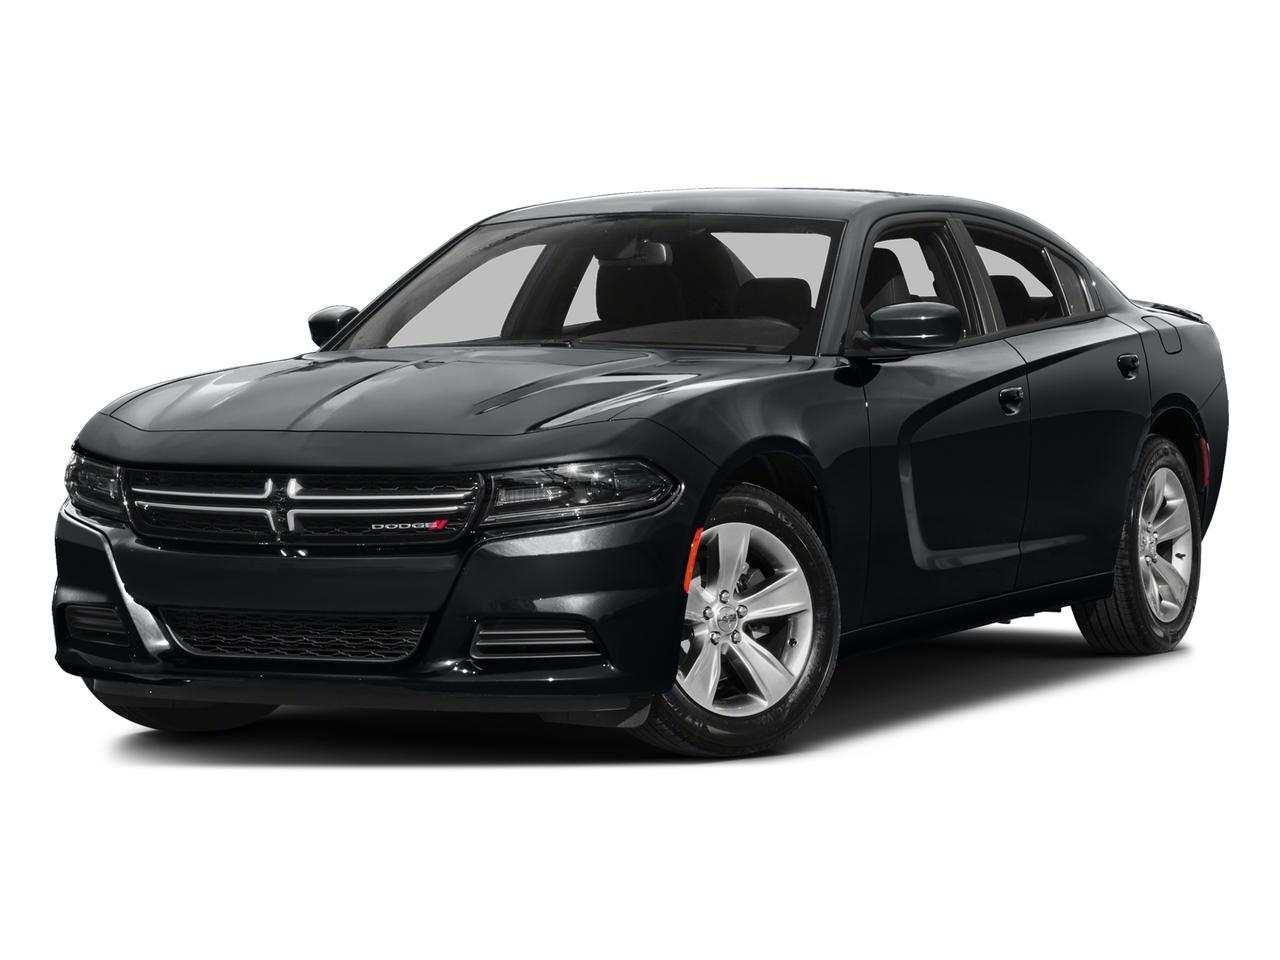 2016 Dodge Charger Vehicle Photo in Kingwood, TX 77339